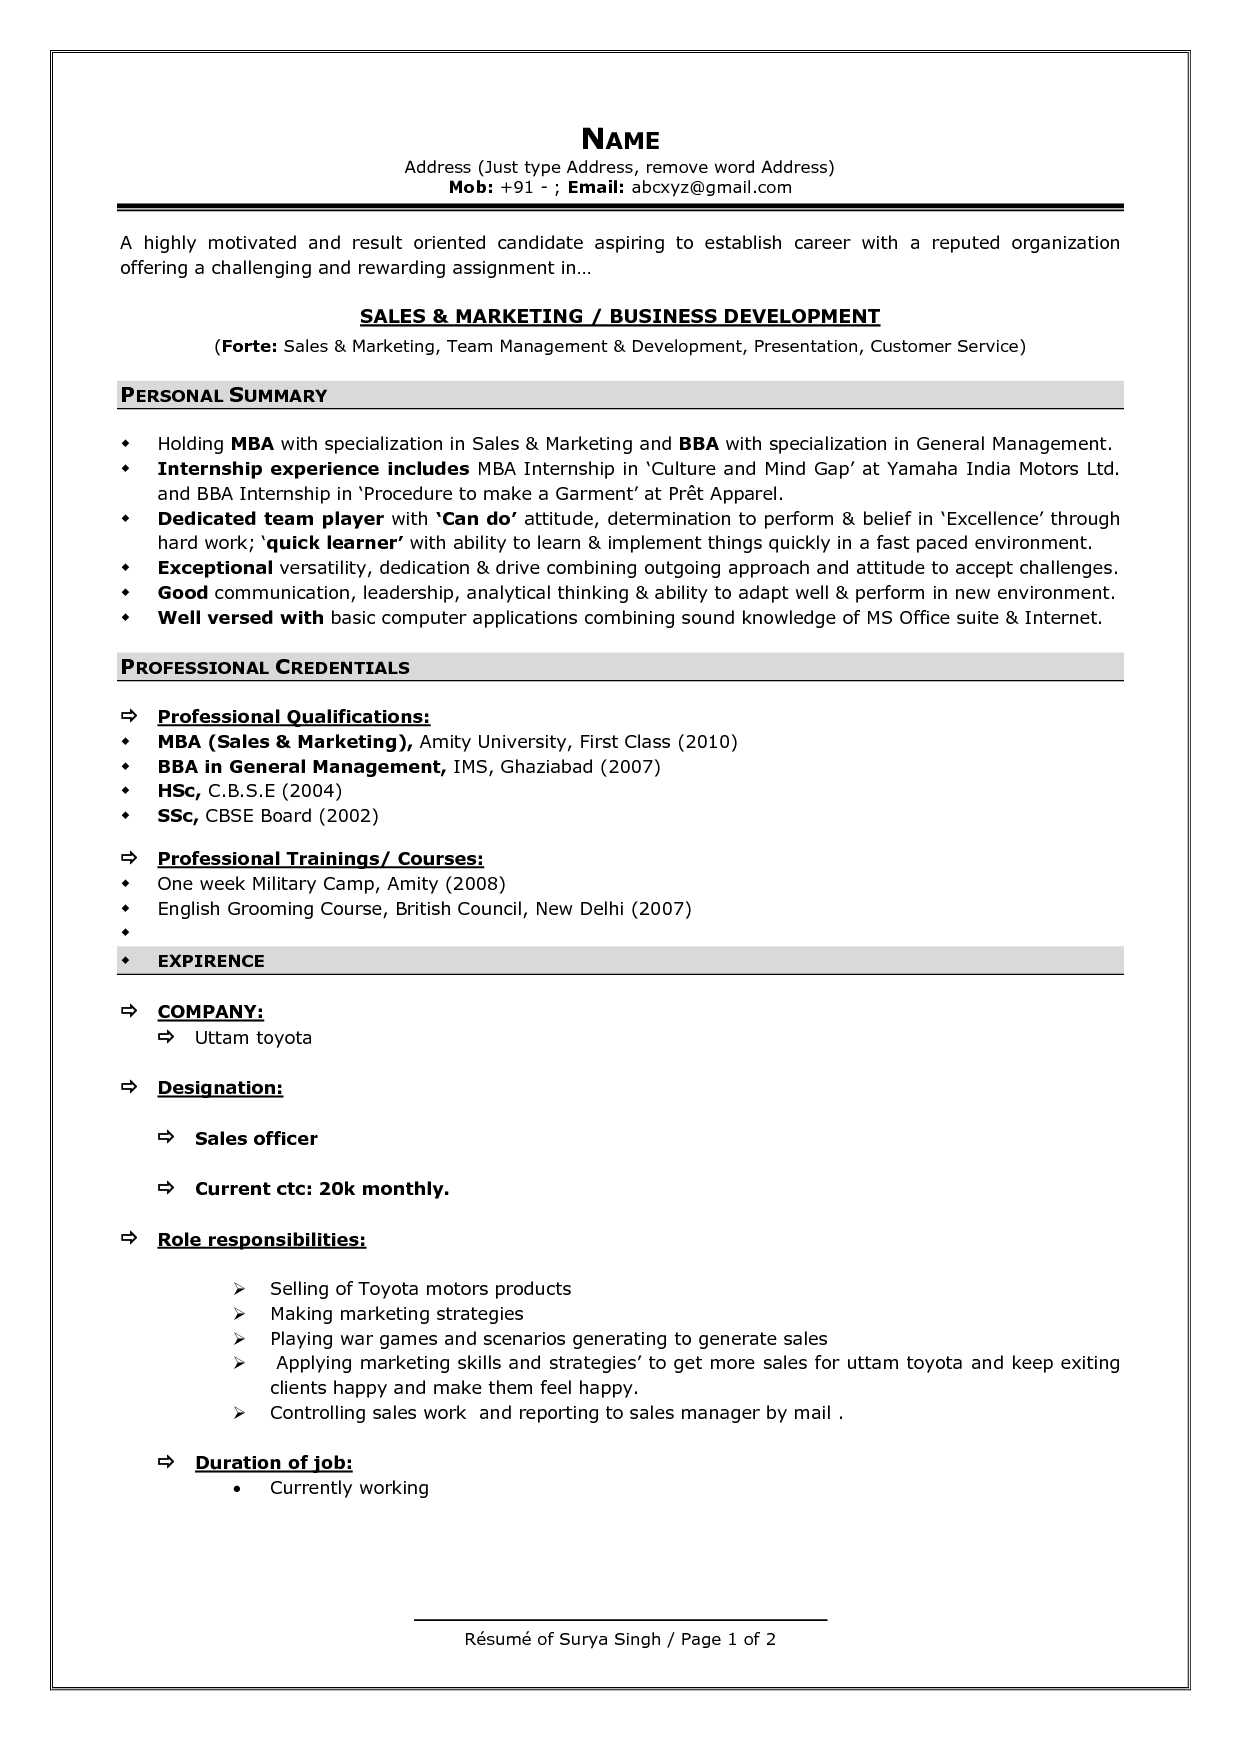 Resume format for it – Performa of Resume